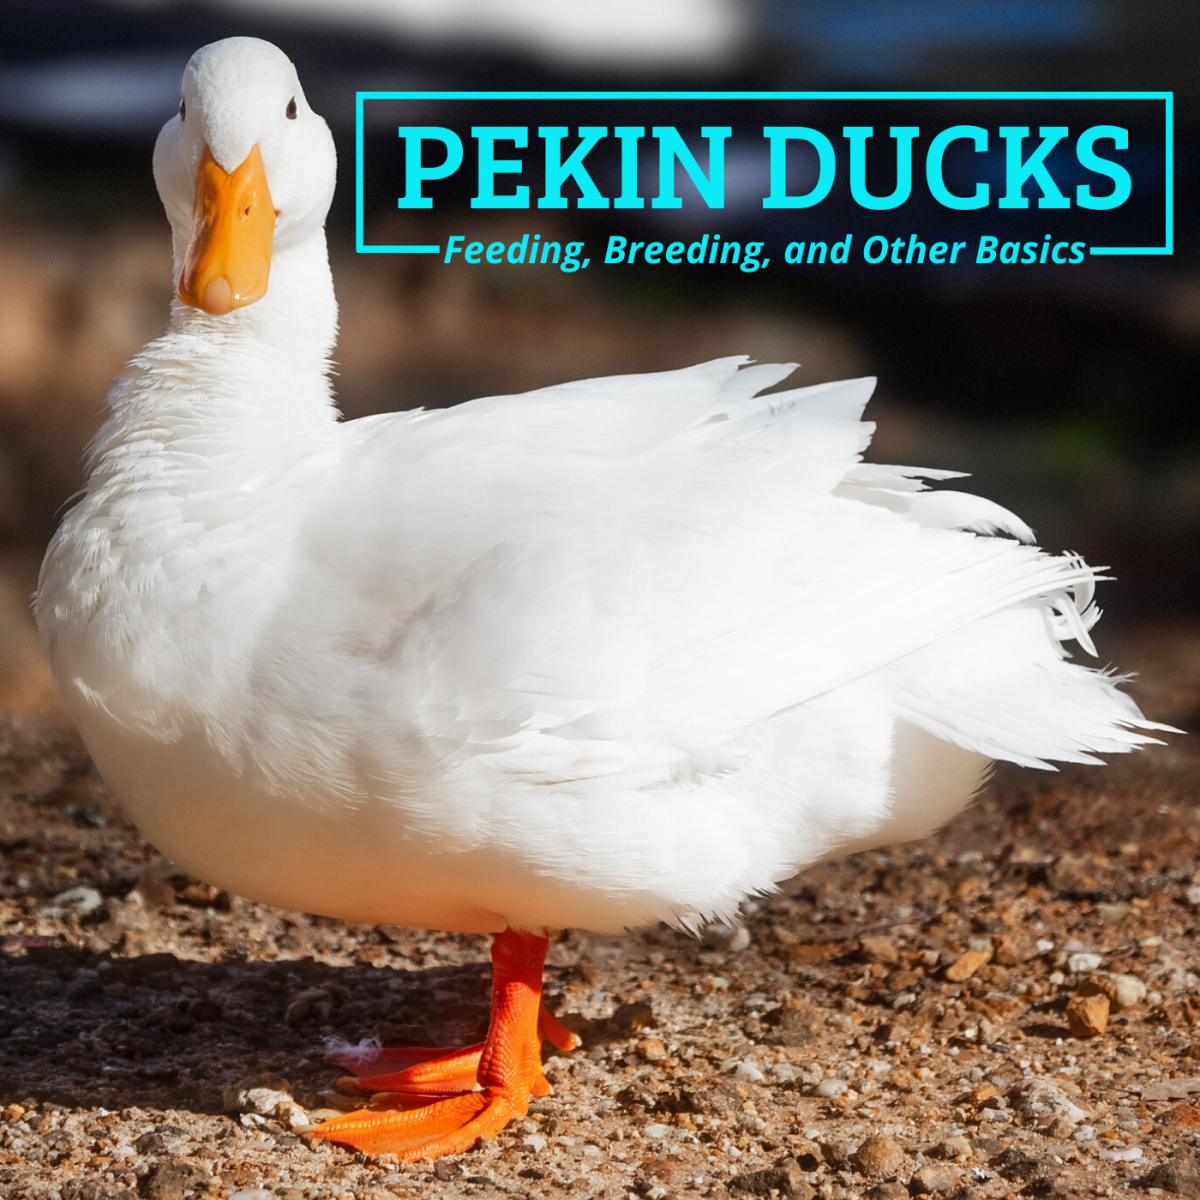 Pekin ducks are beautiful, hearty birds that make great pets and show birds but are also prized for their meat and eggs.